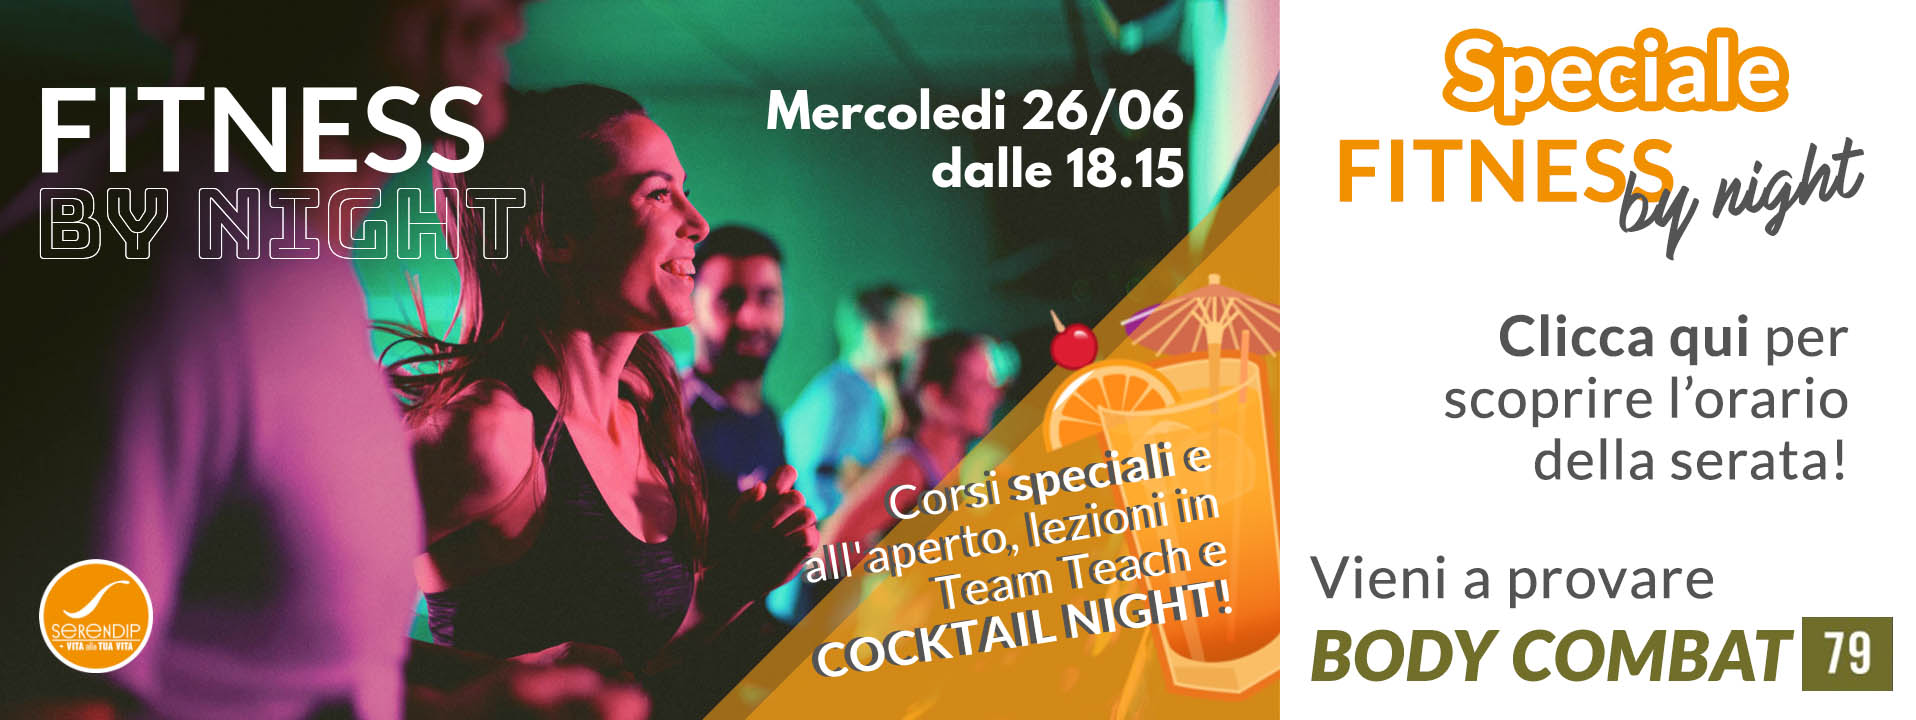 Speciale Fitness by night - Serendip